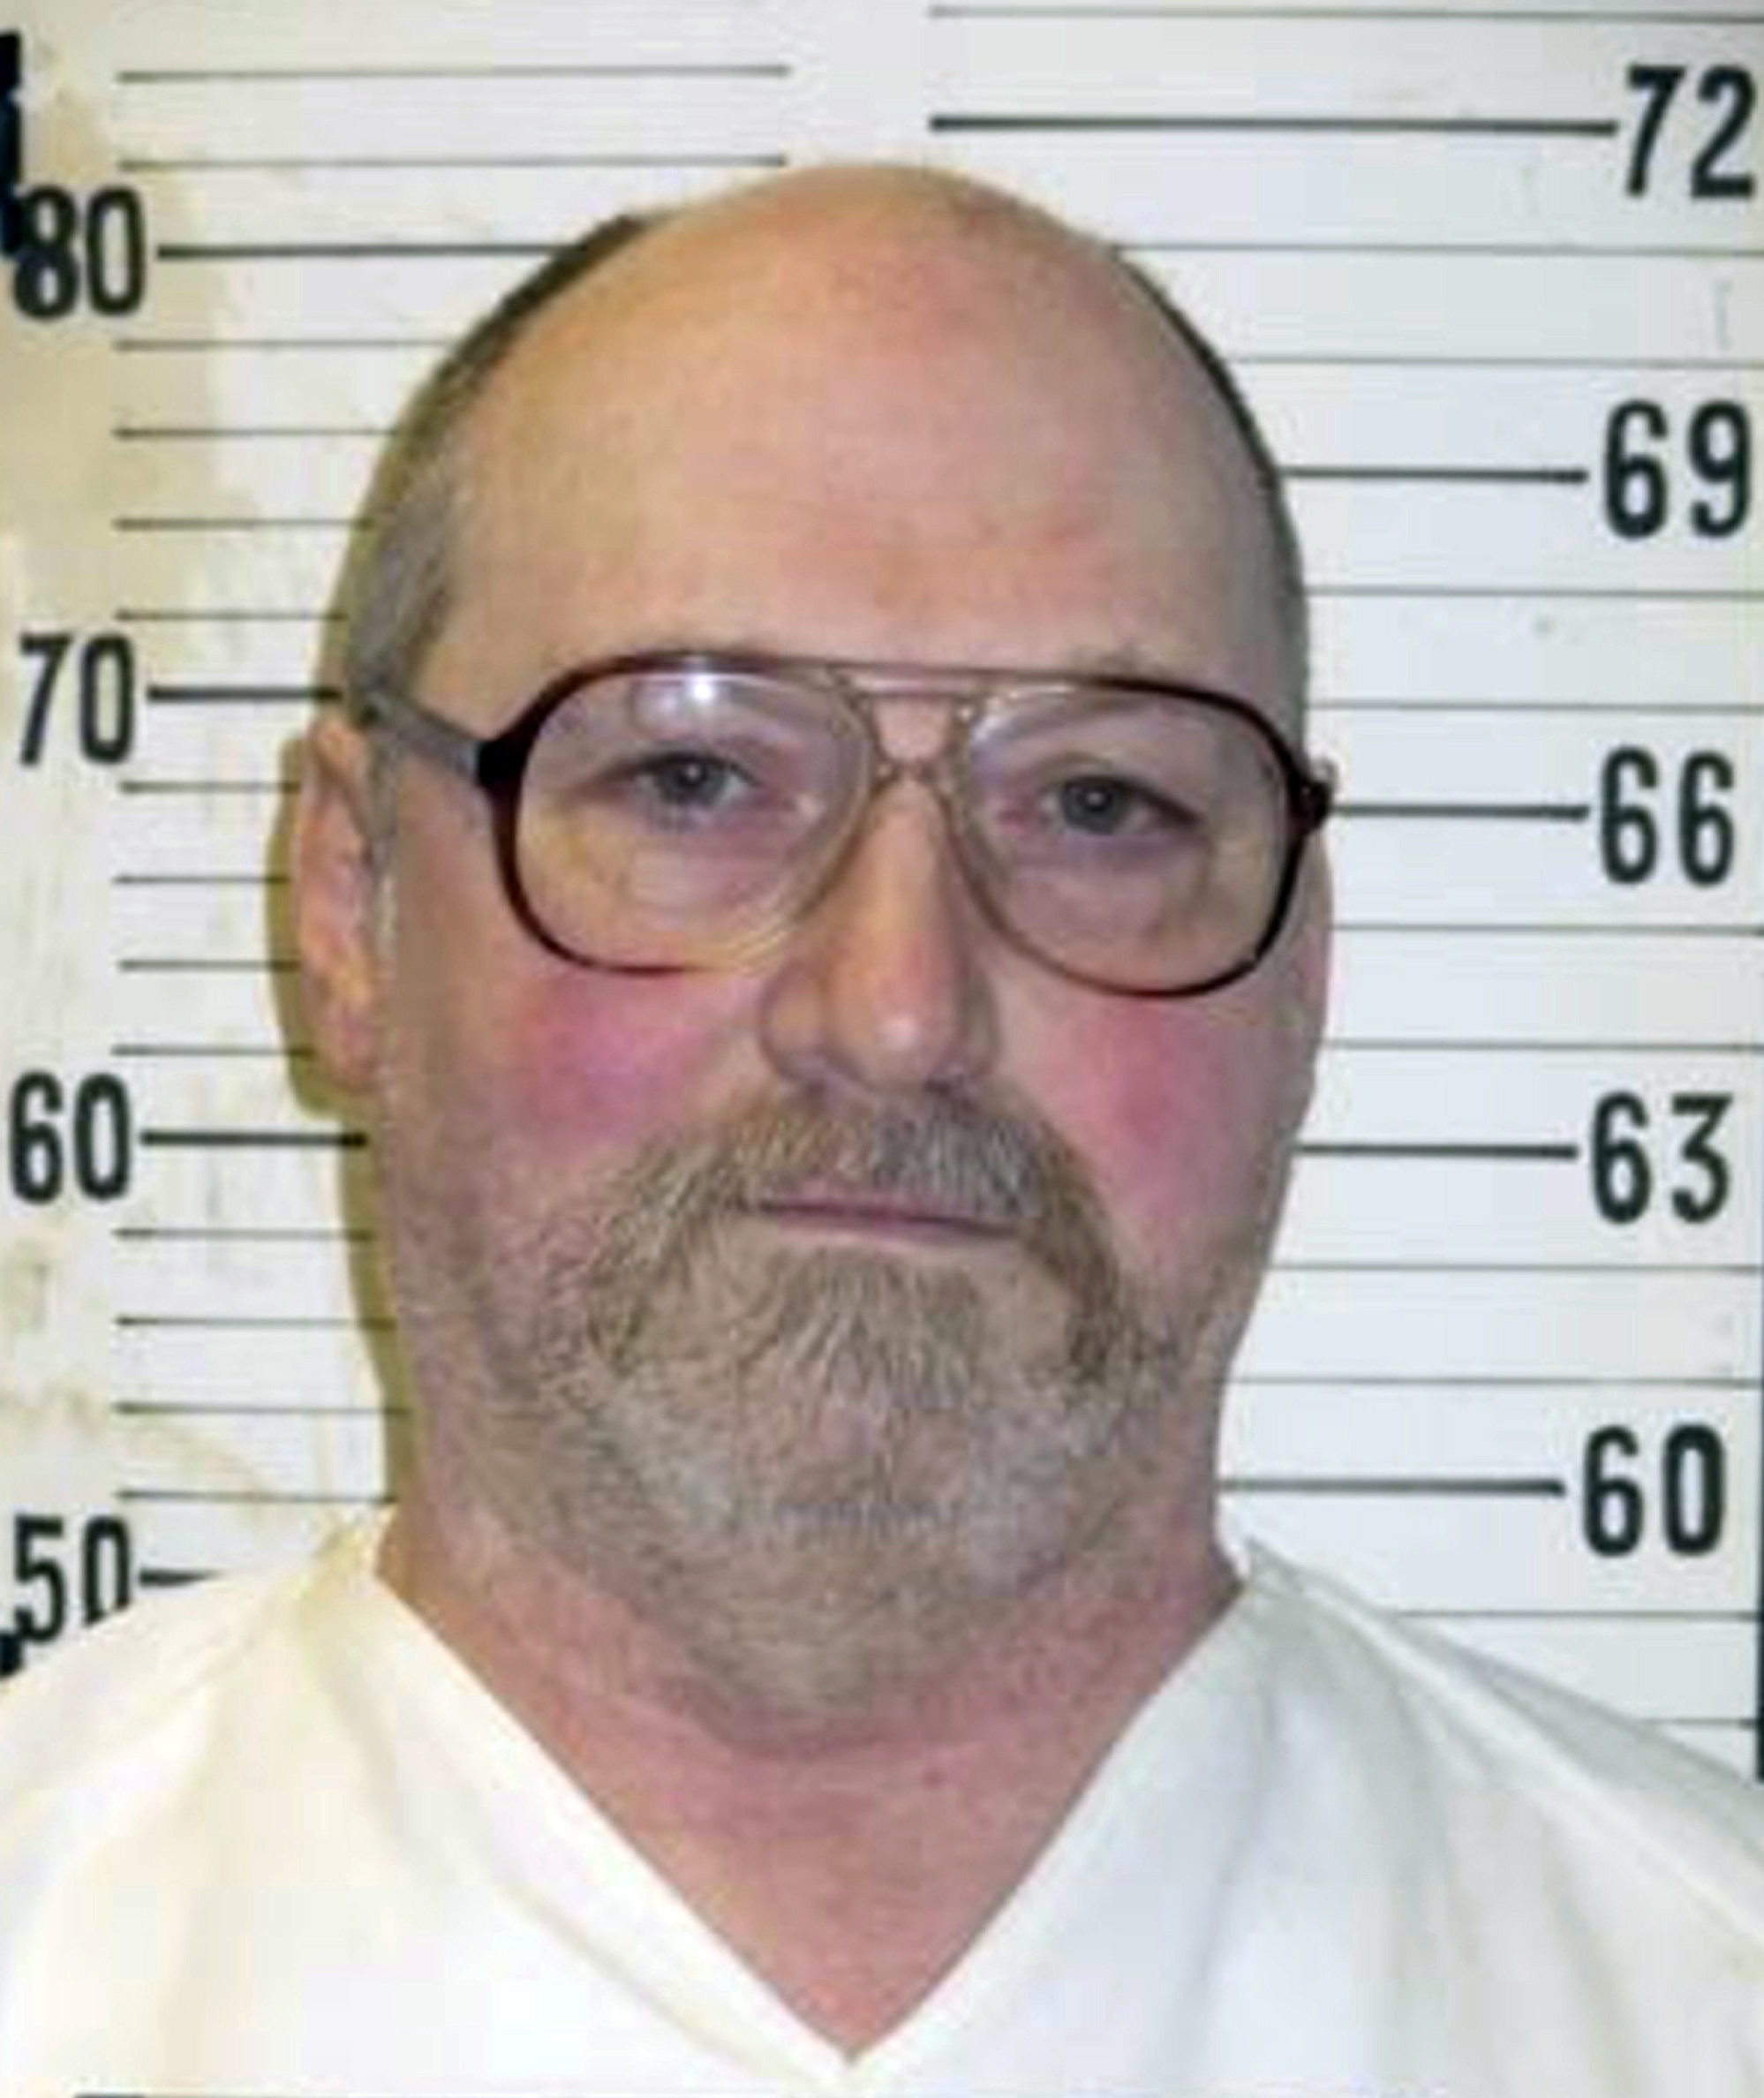 Tennessee inmate second to be executed in electric chair in